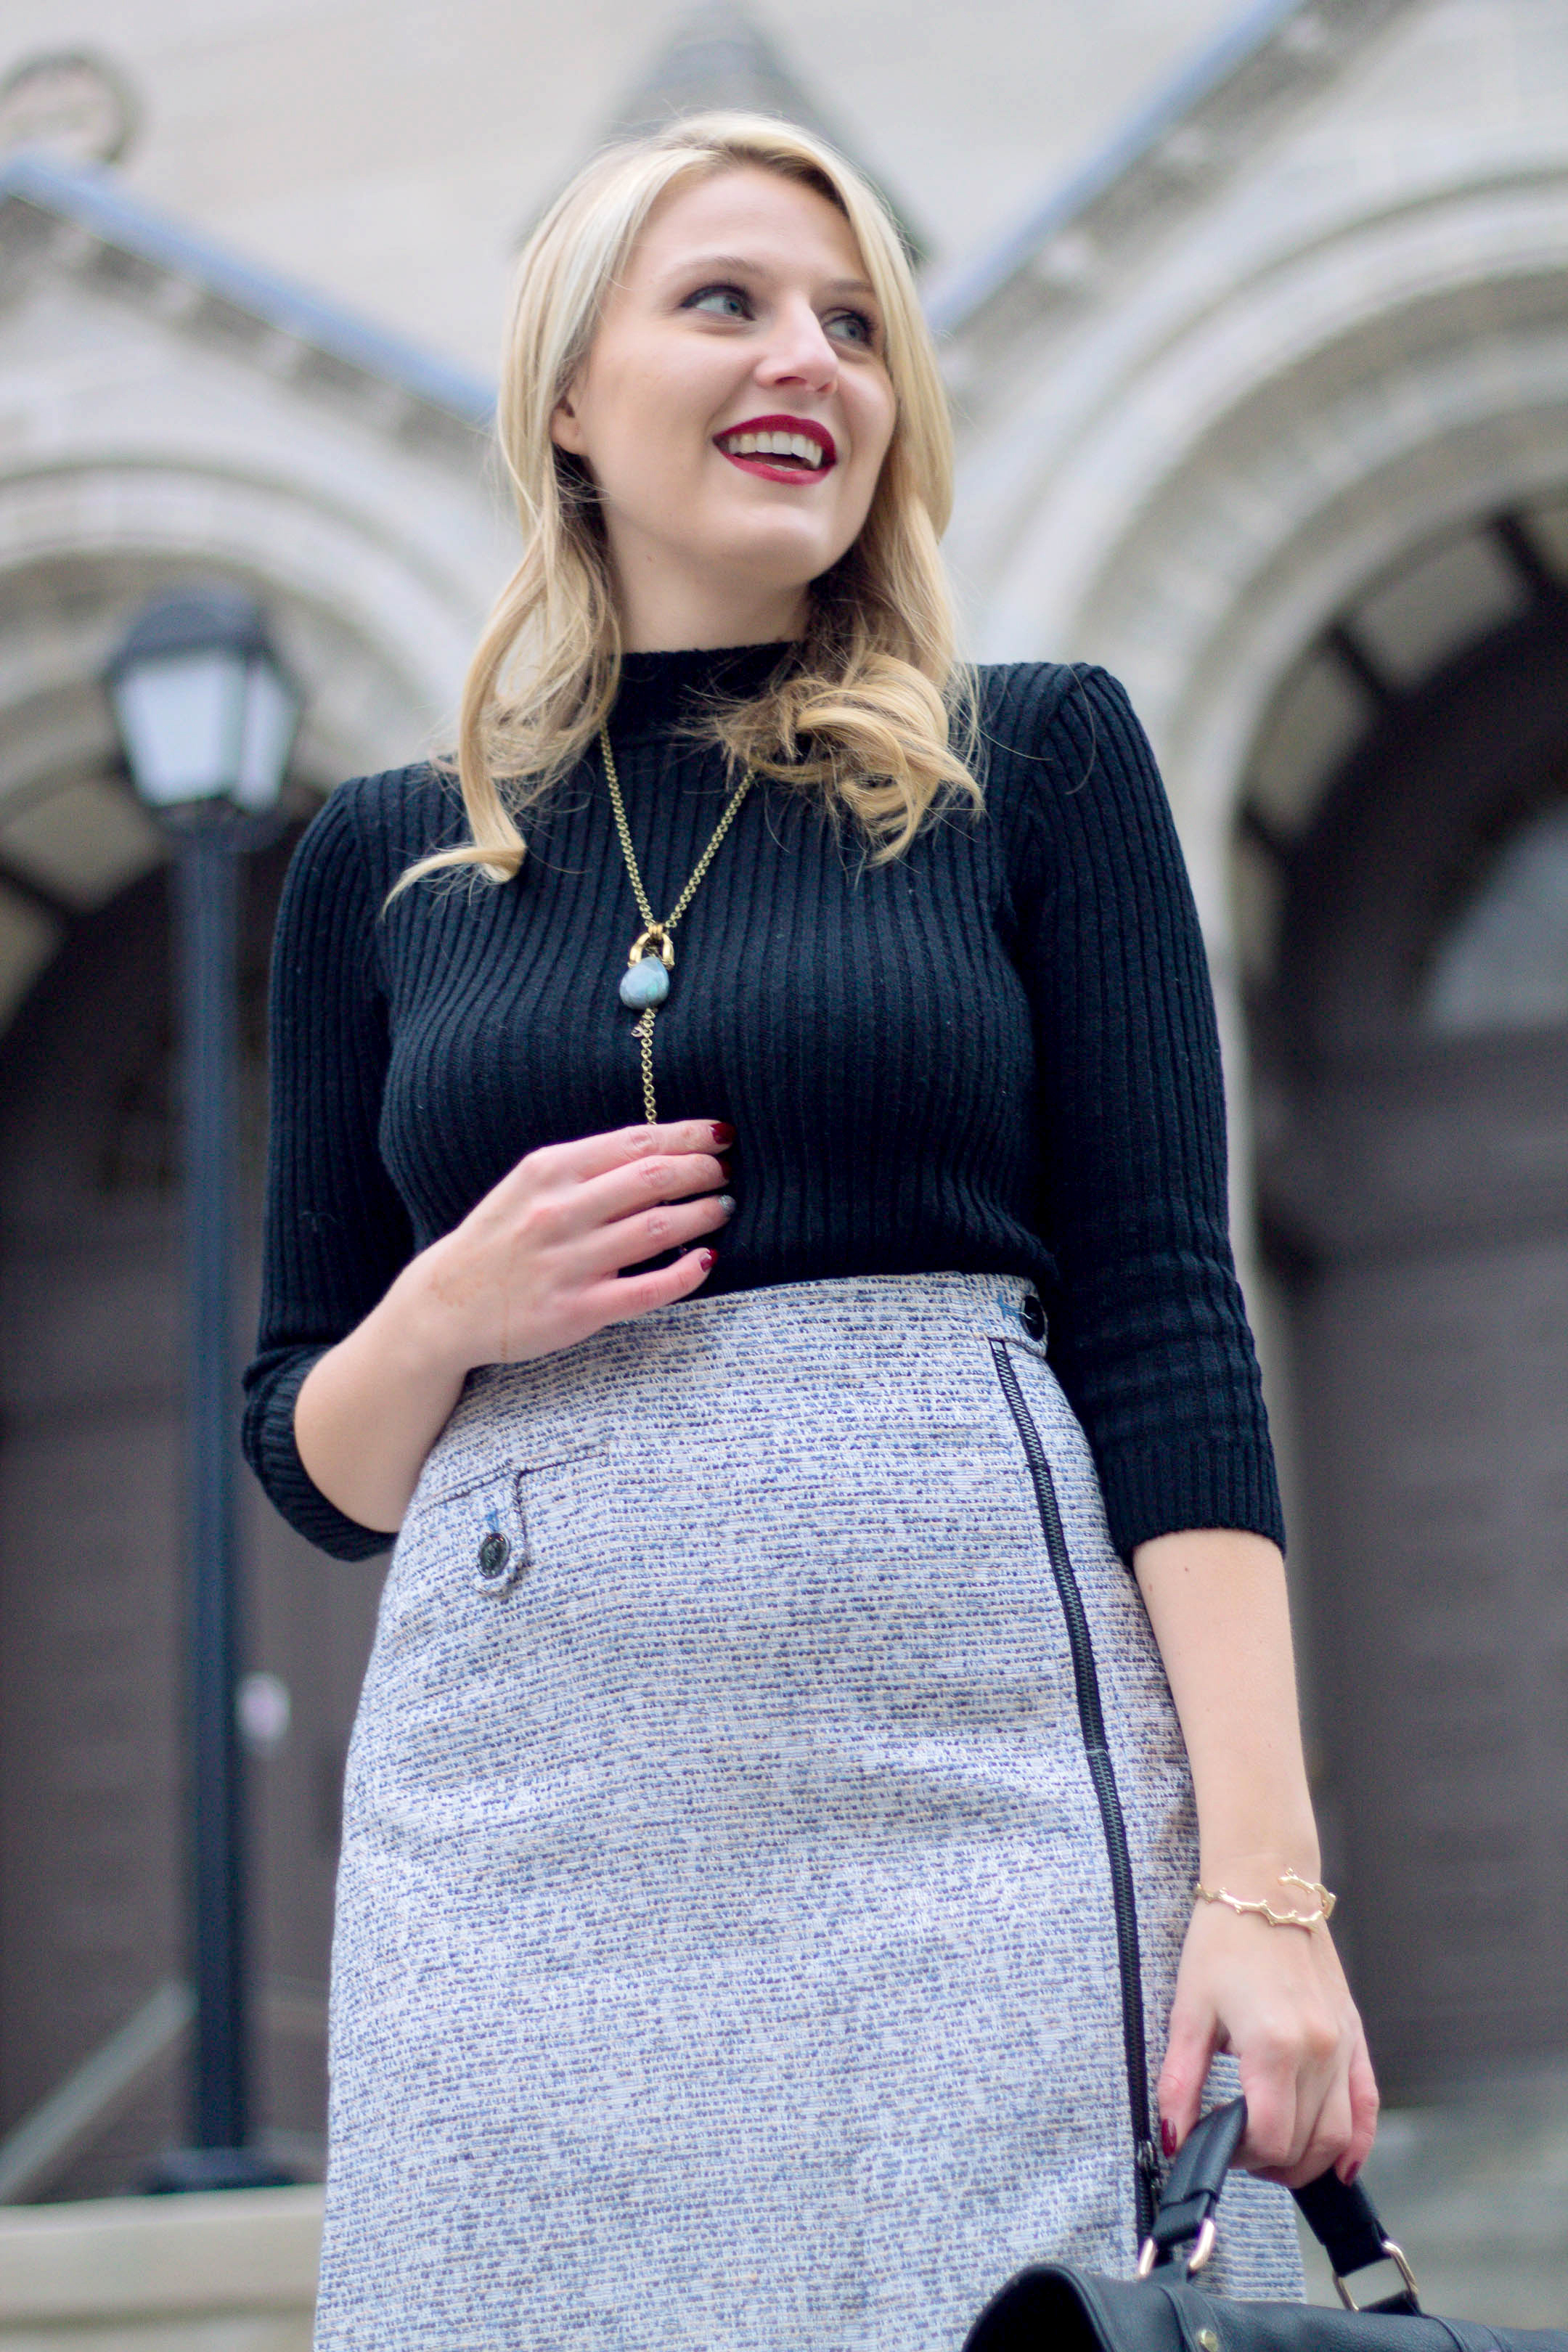 Monica Modzelewski wearing a tweed skirt